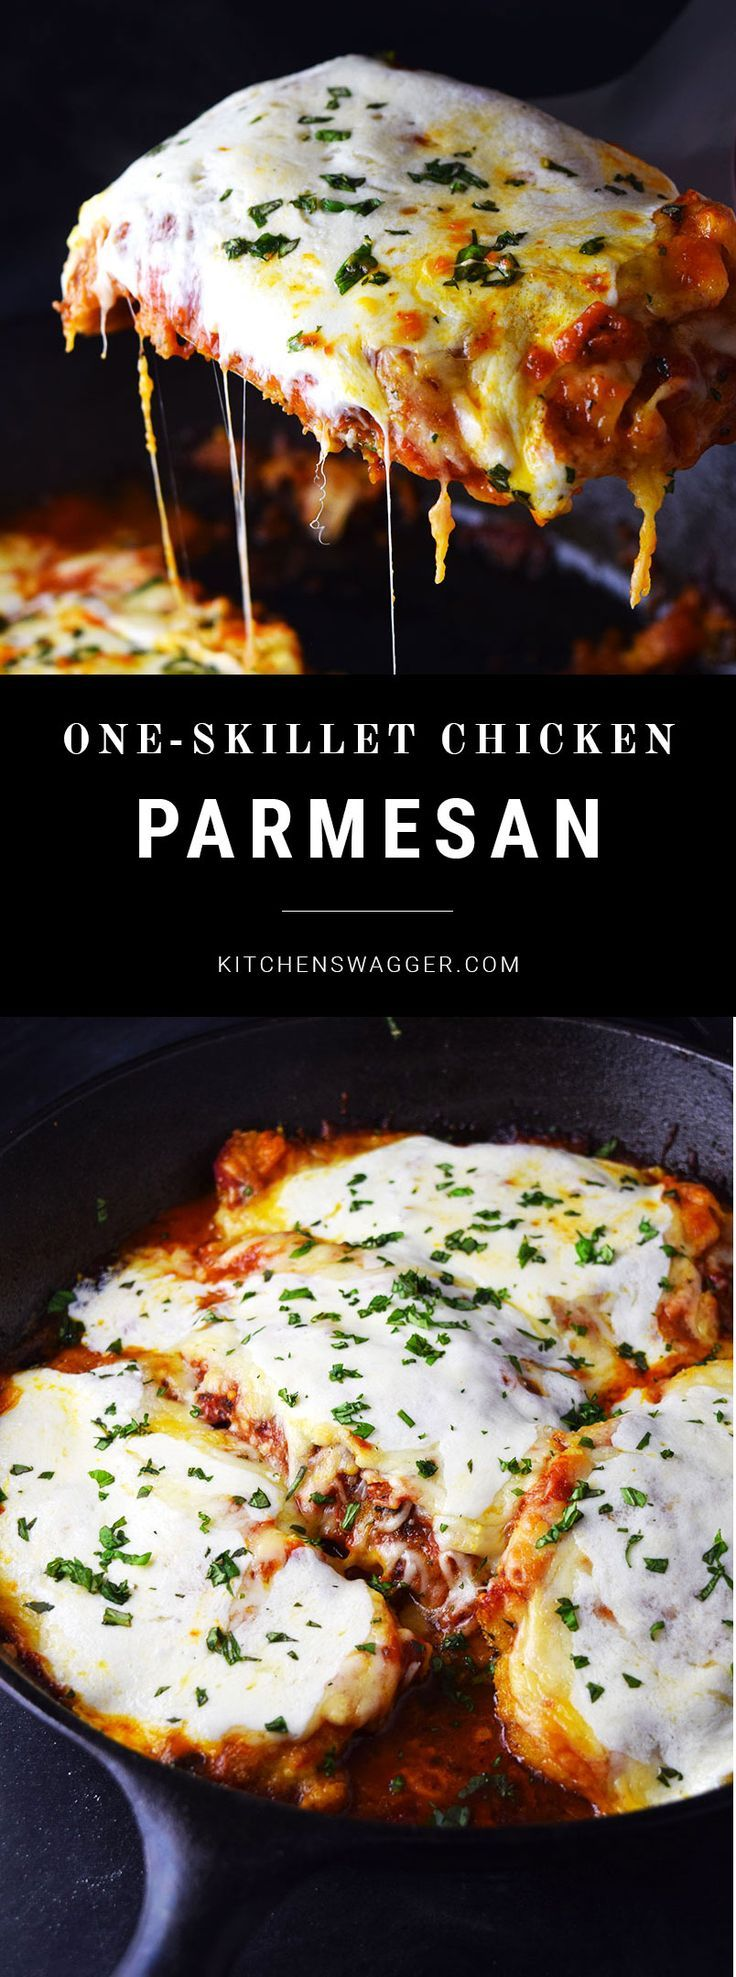 One-Skillet Chicken Parmesan Recipe | Kitchen Swagger